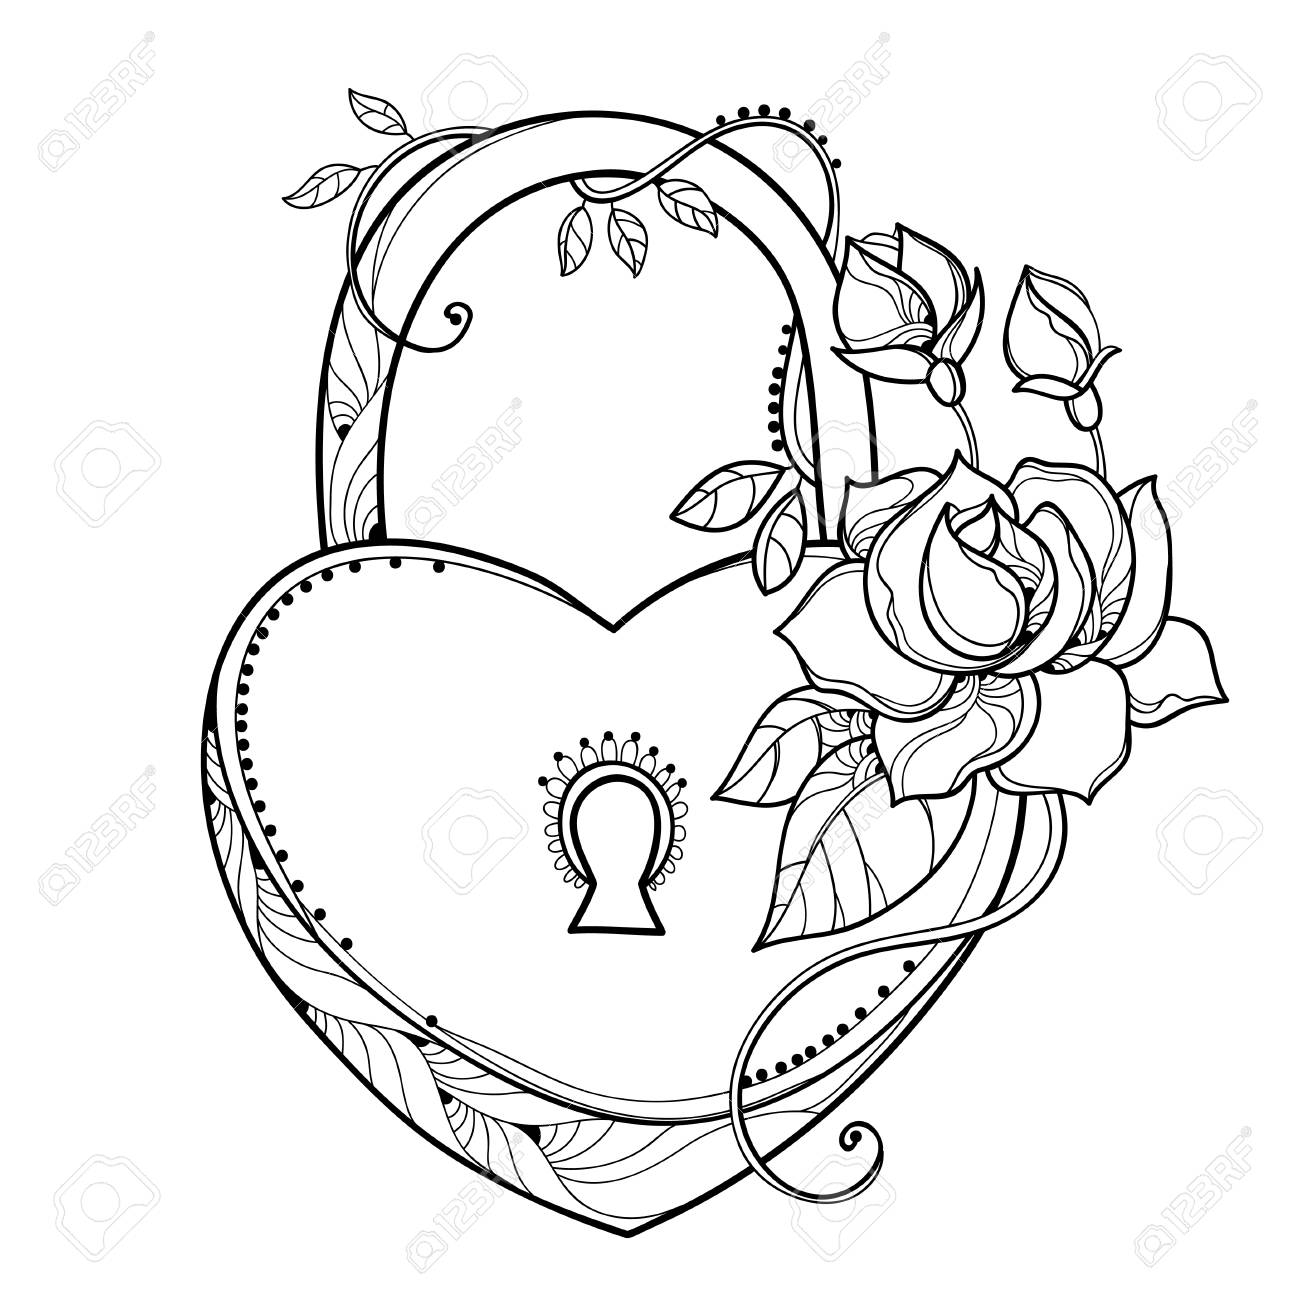 Drawing Of Lock Heart With Outline Ornate Roses Leaf And Bud Royalty Free Cliparts Vectors And Stock Illustration Image 93416055